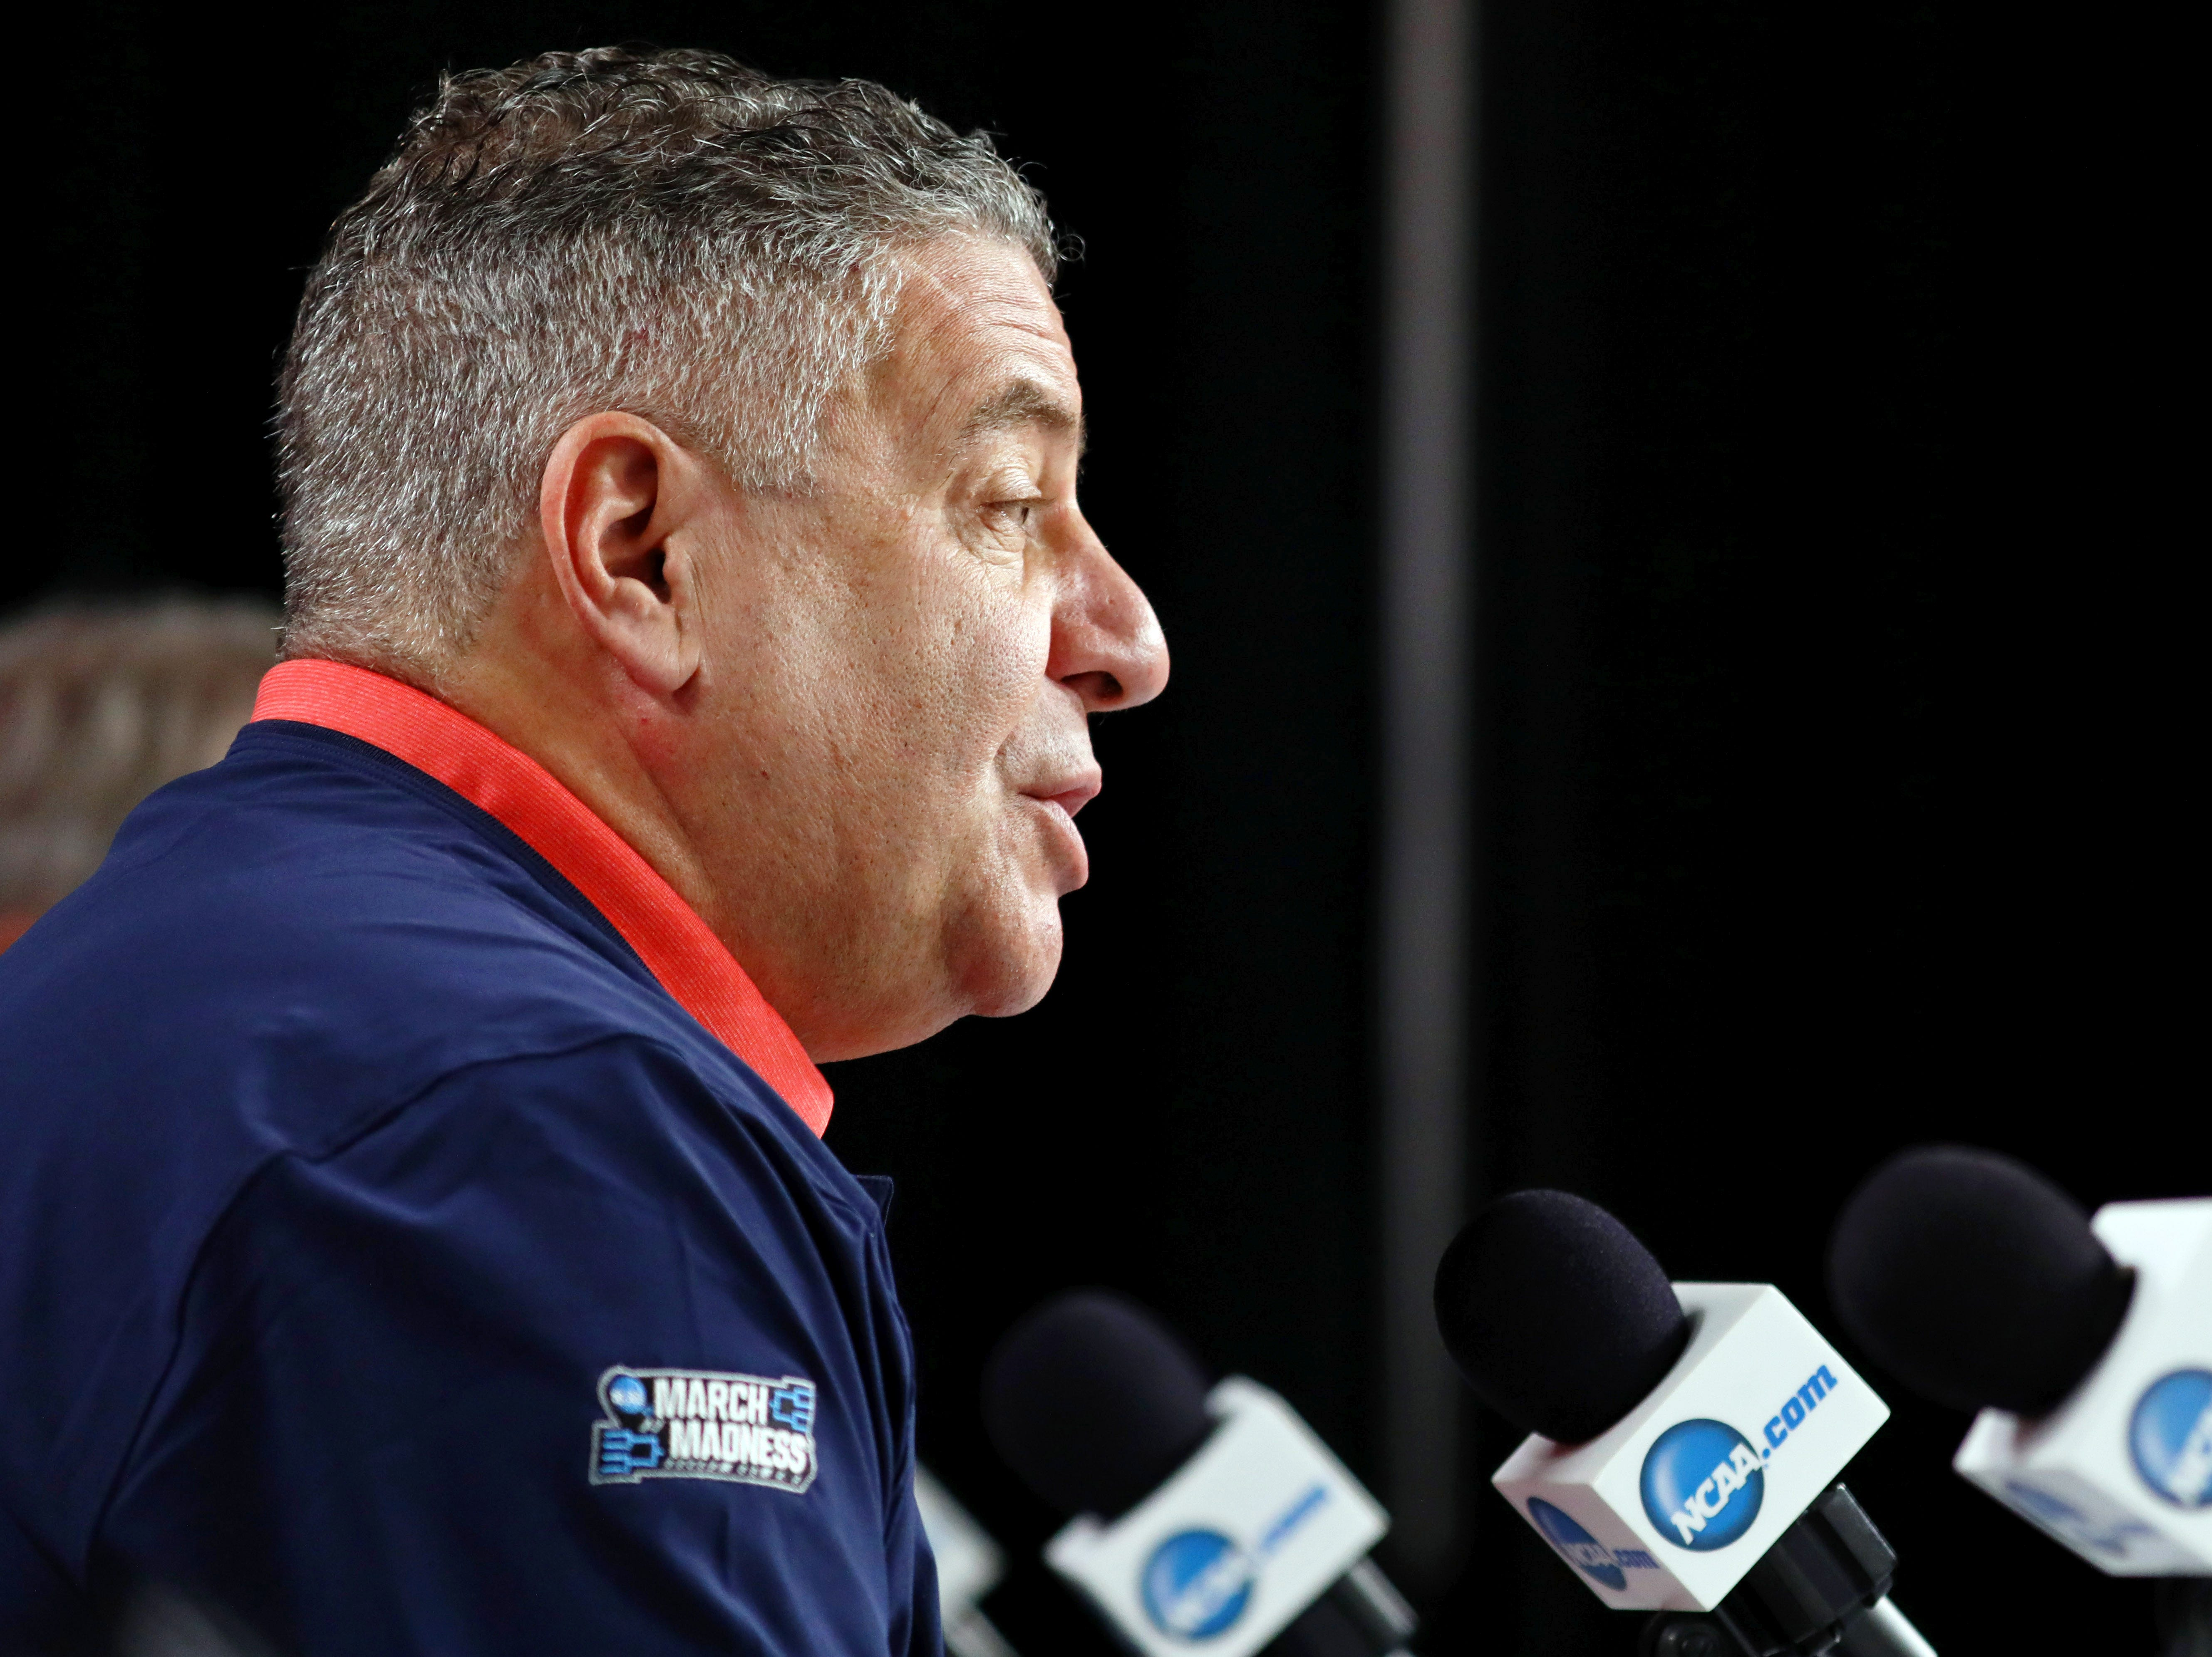 Mar 28, 2019; Kansas City, MO, United States;  Auburn Tigers head coach Bruce Pearl speaks during a press conference for the midwest regional of the 2019 NCAA Tournament at Sprint Center. Mandatory Credit: Jay Biggerstaff-USA TODAY Sports